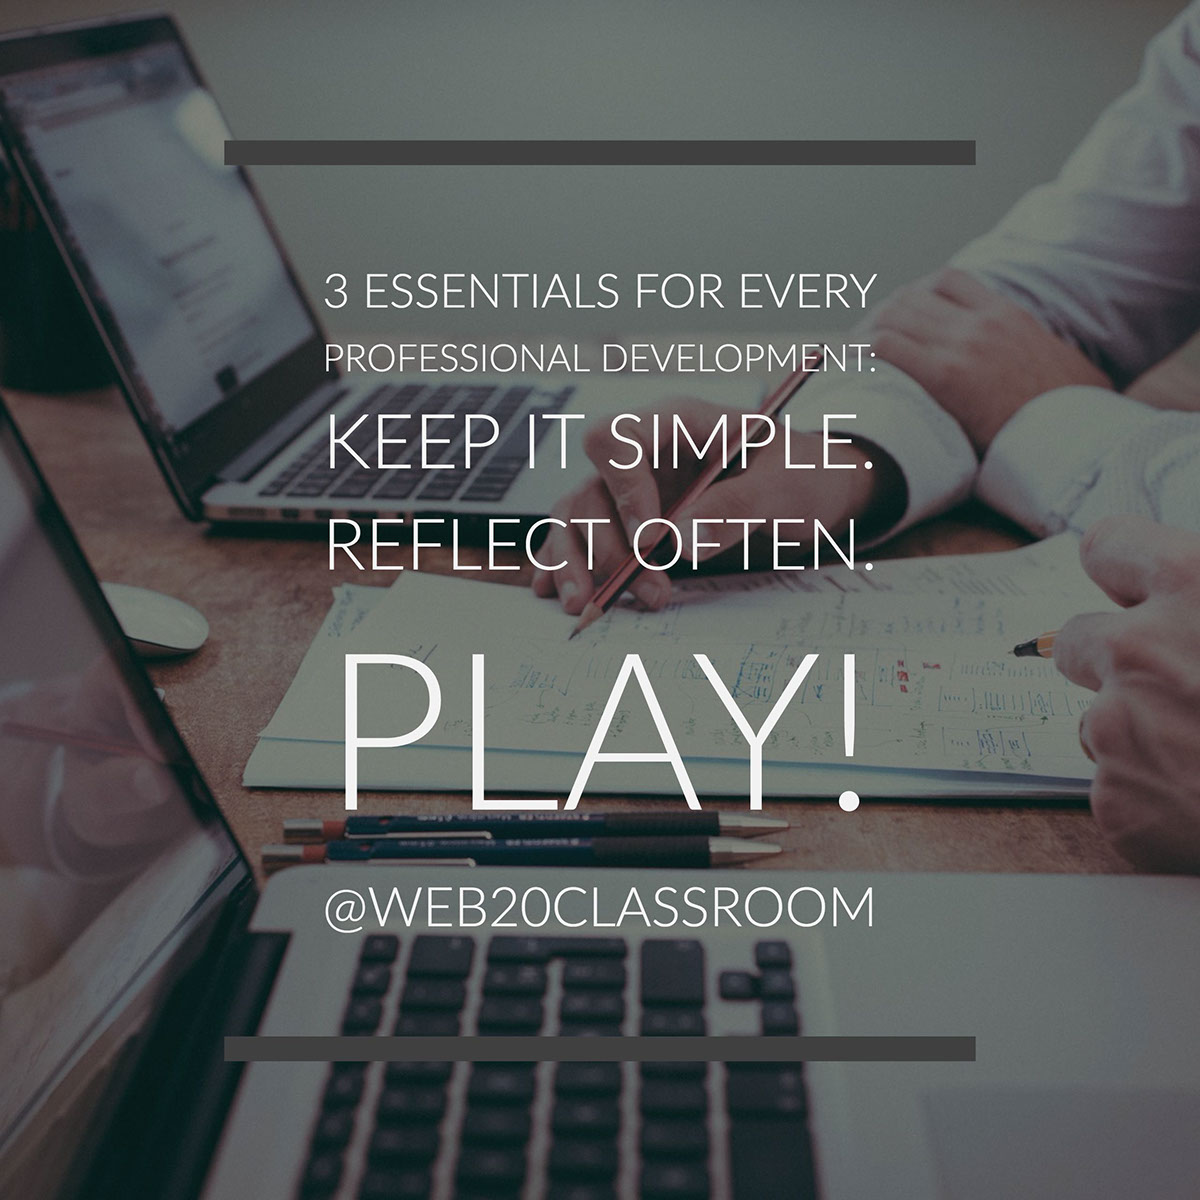 3 Essentials For Every Professional Development: Keep It Simple. Reflect Often. Play! @web20classroom